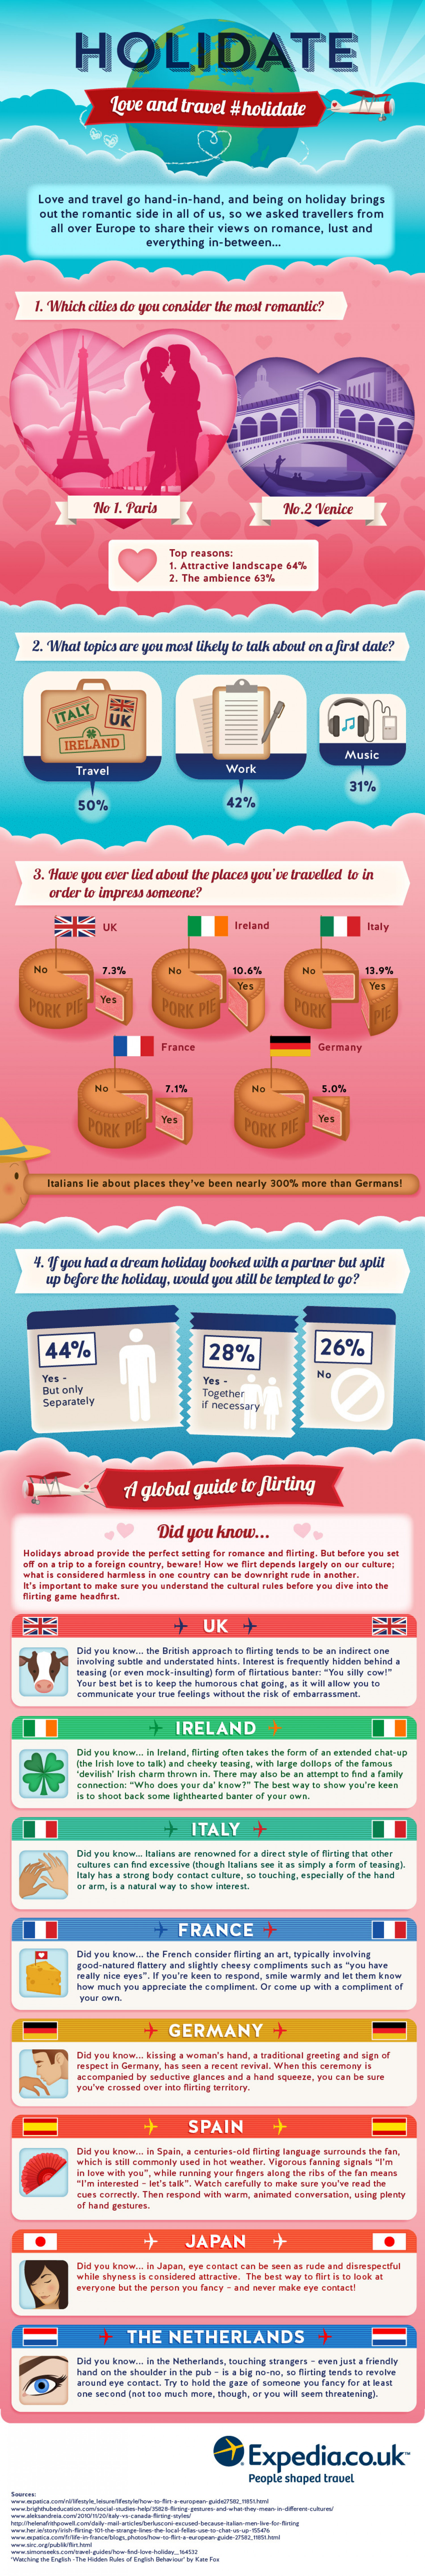 Holidate: love and travel Infographic